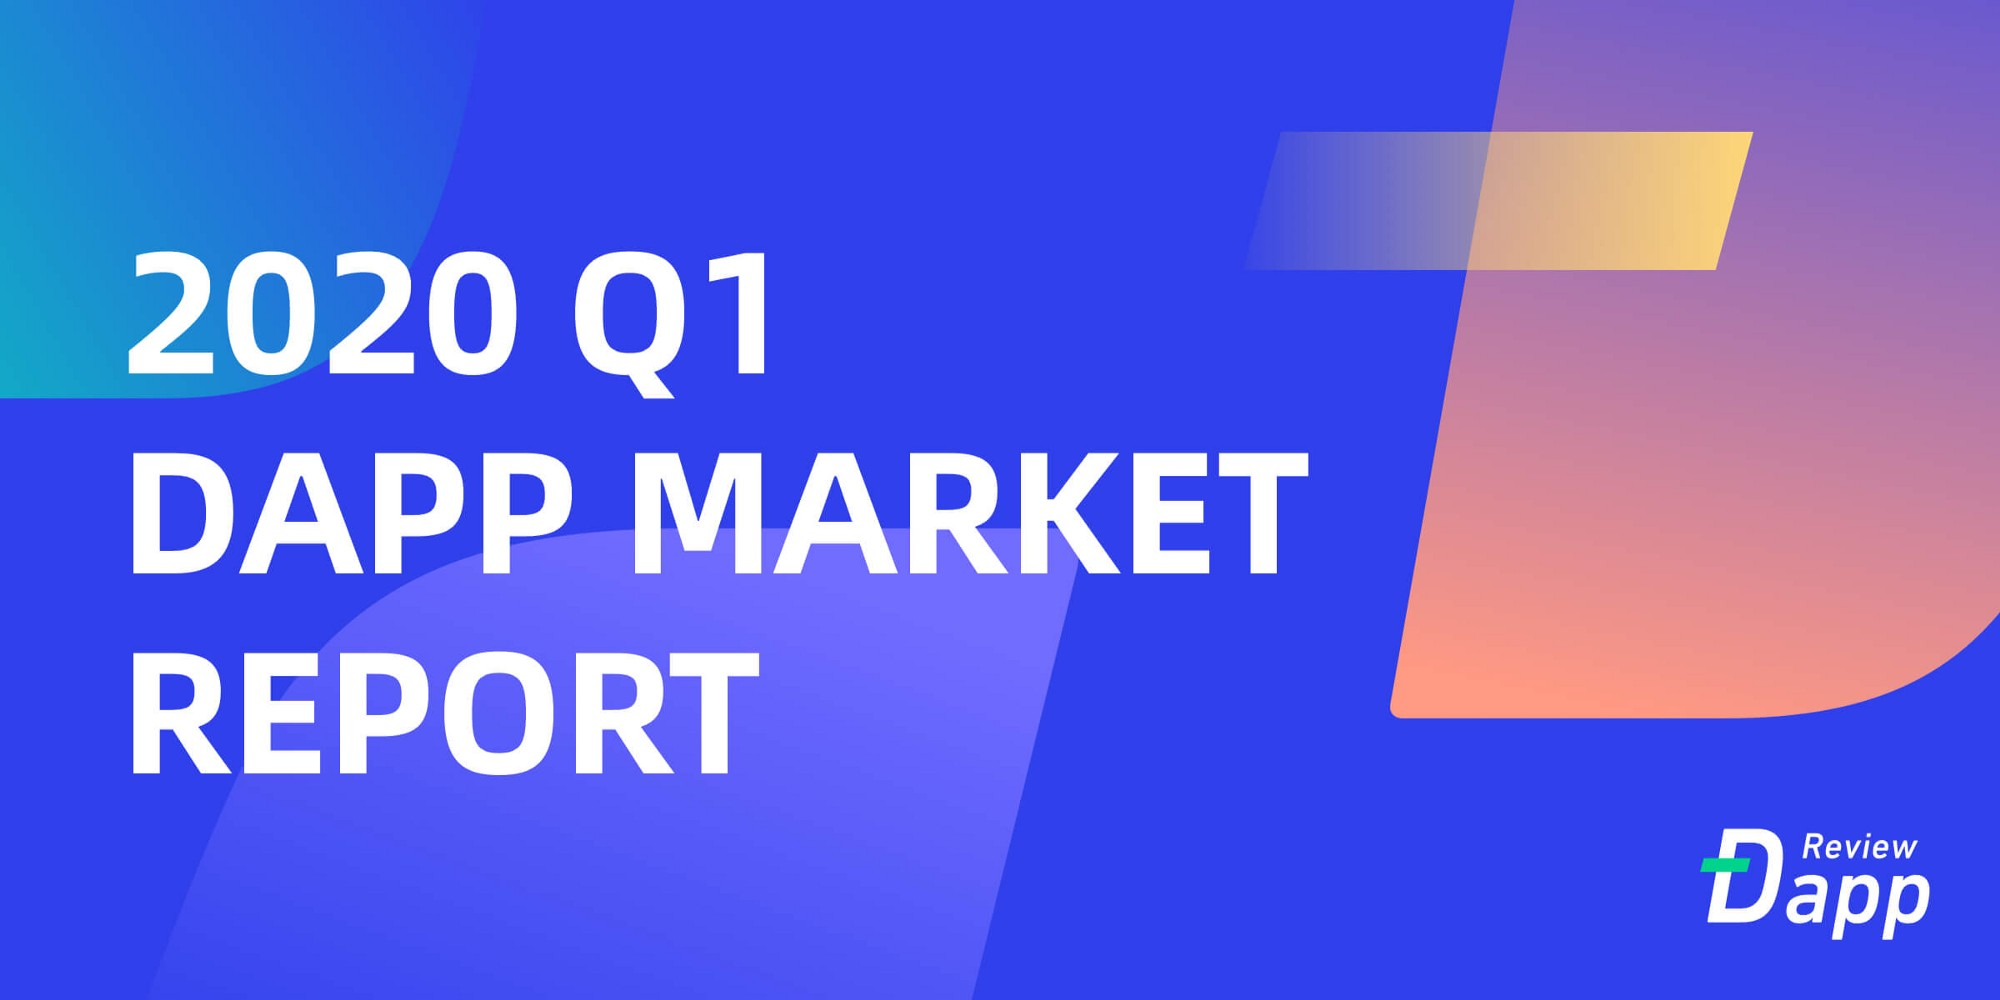 2020 Q1 DApp Market Report by DAppReview